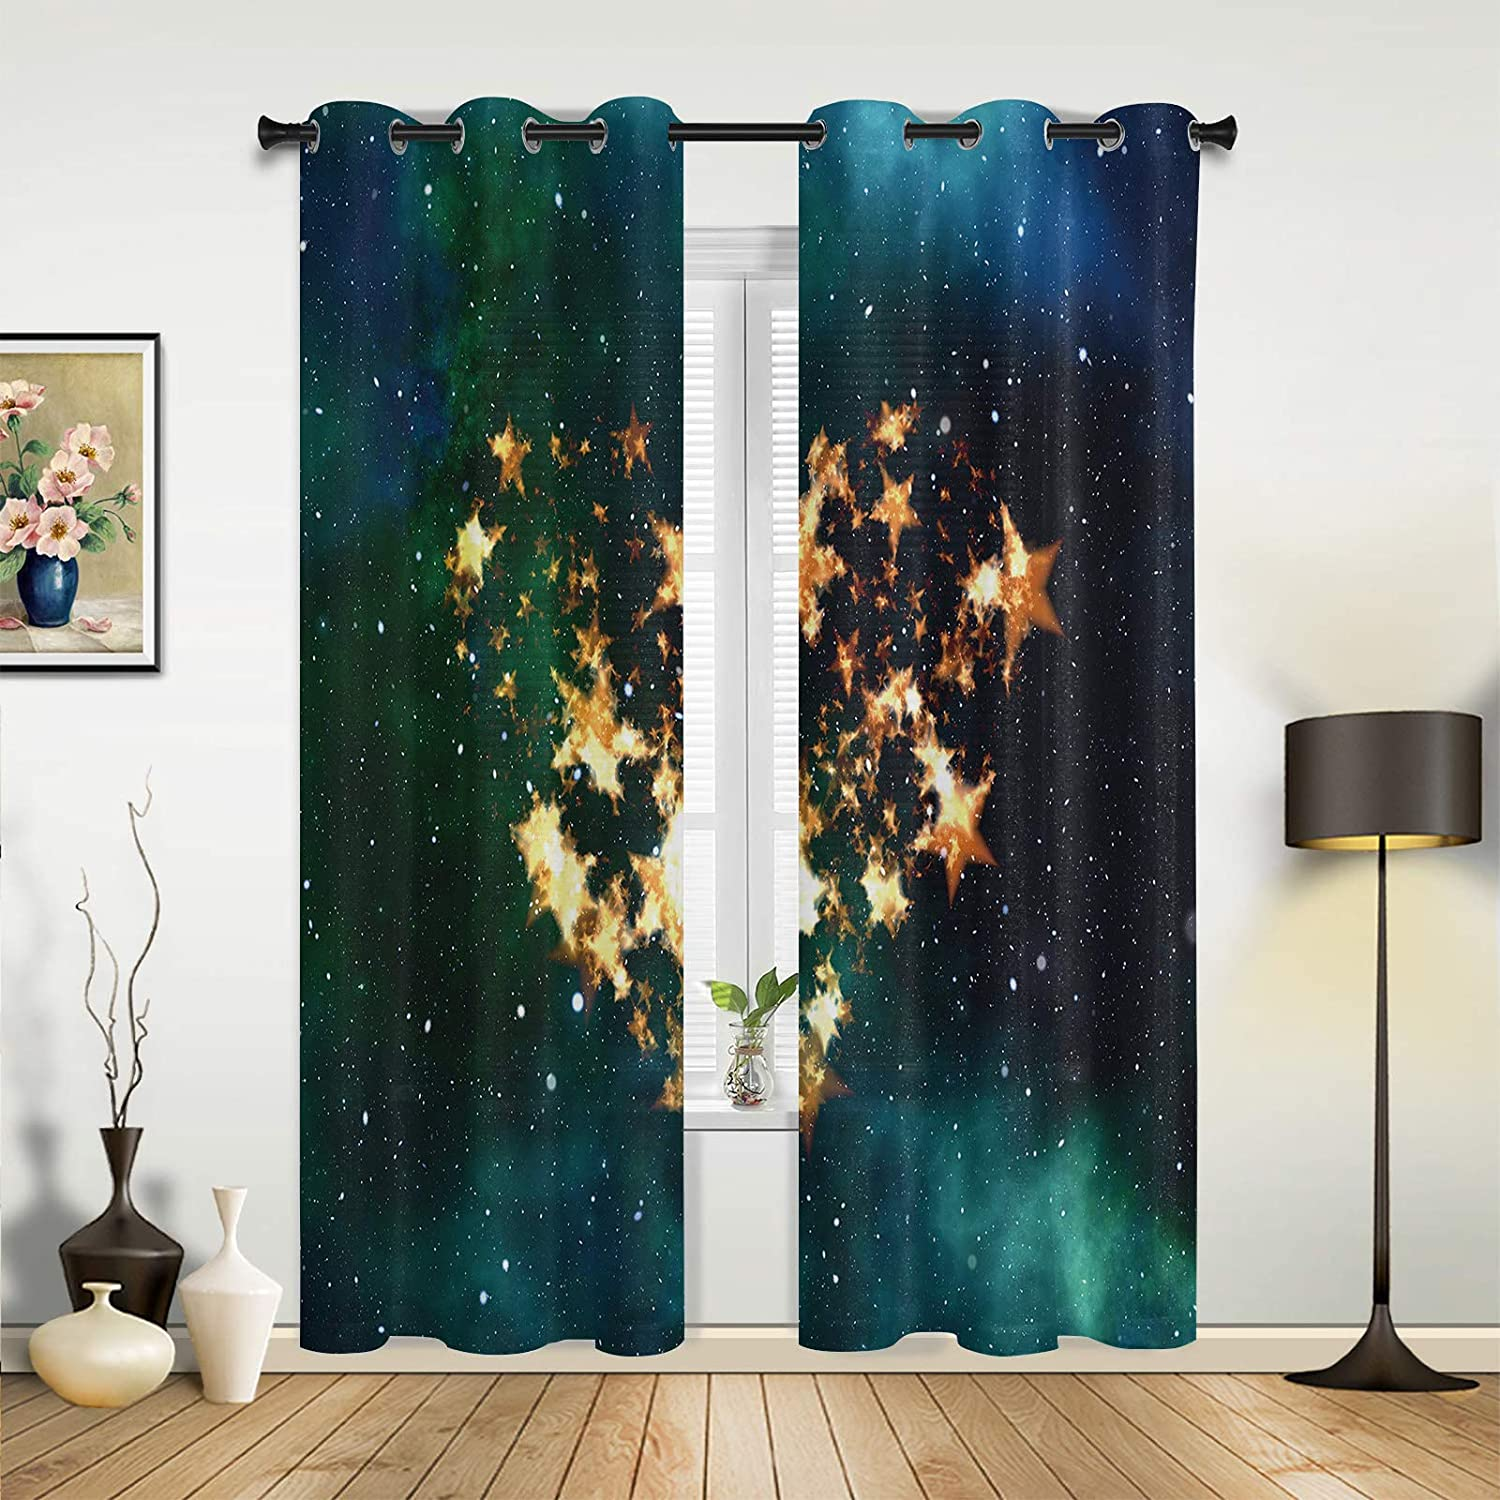 Window Sheer Curtains for Bedroom Living Ranking TOP8 Valentine's Happy Miami Mall Room